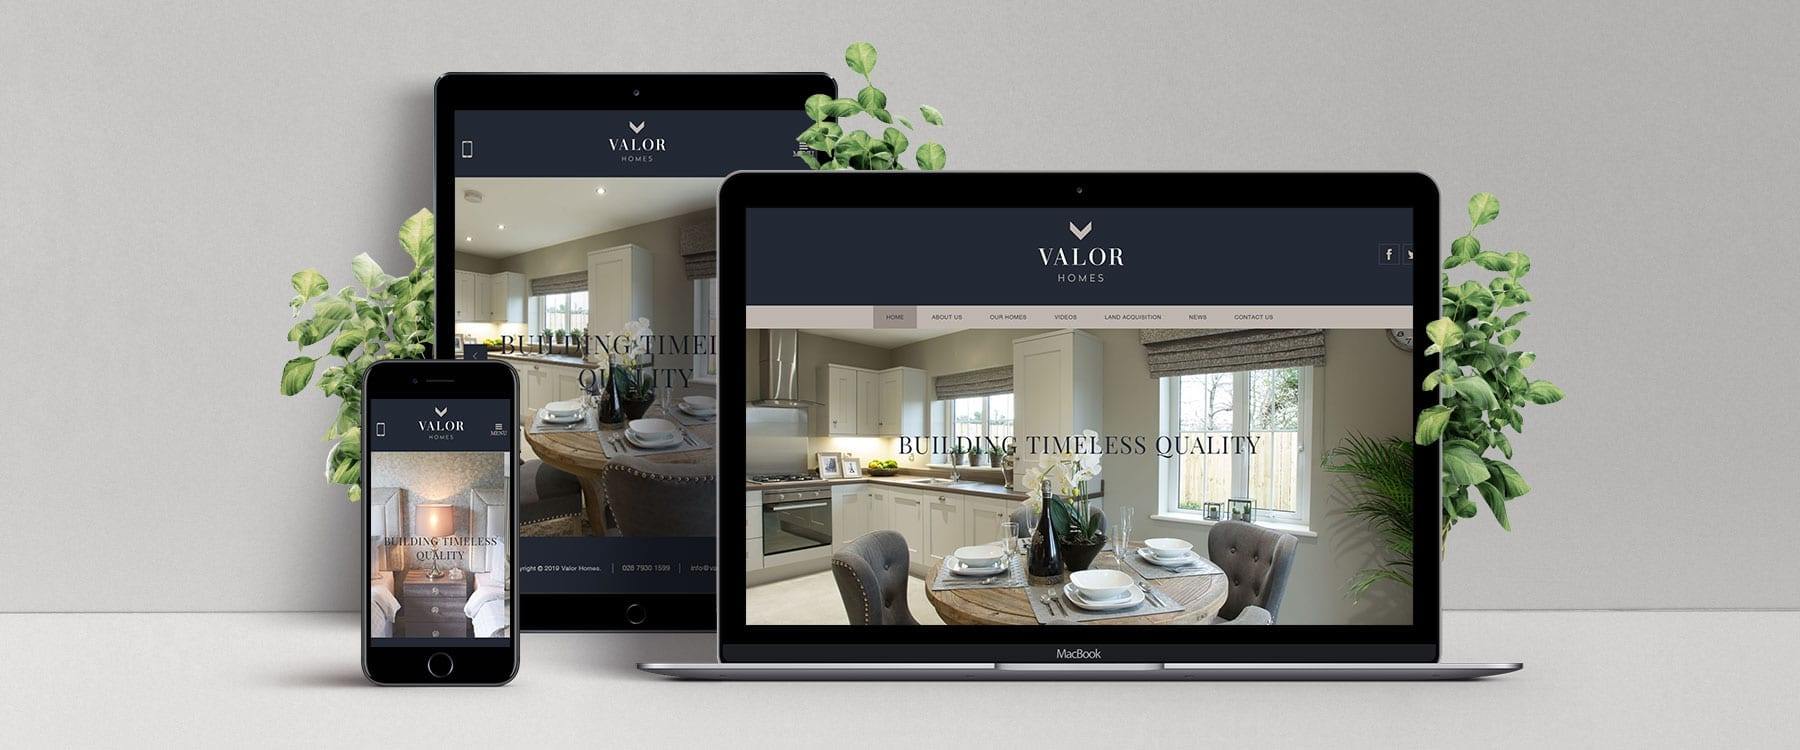 Valor Homes Image First